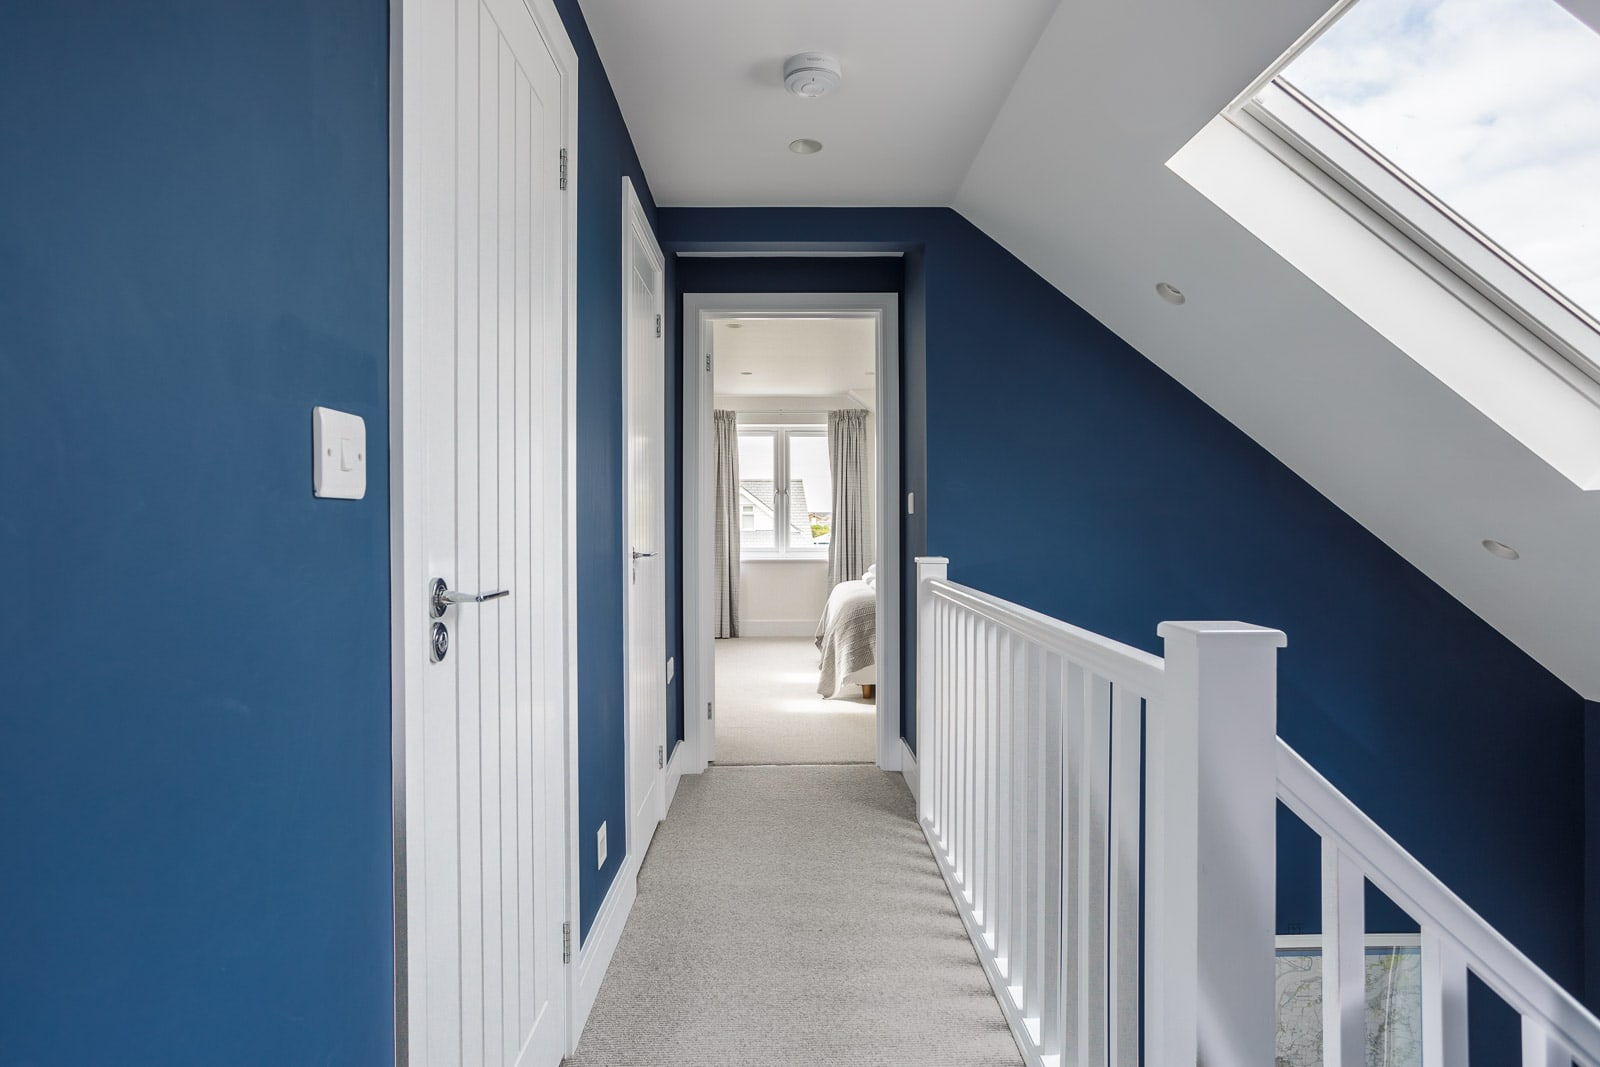 Sleek blue and white colour scheme for modern first floor landing with view into bedroom at the end